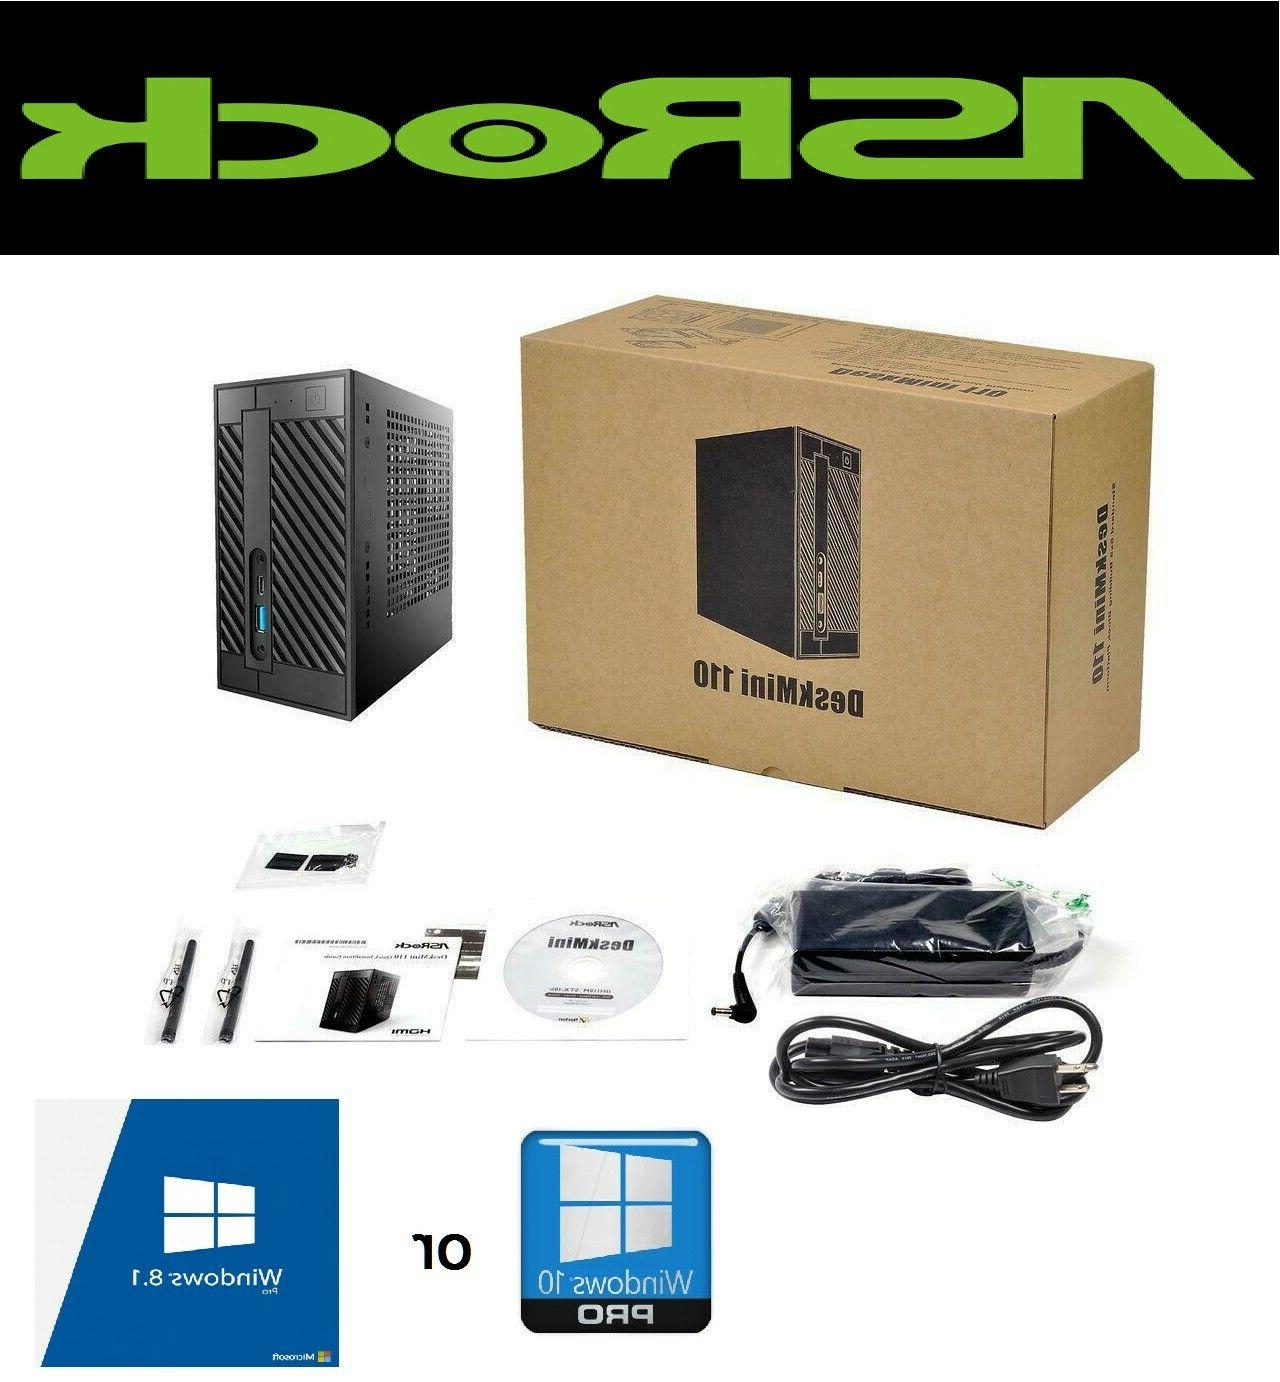 deskmini 110w mini pc core i7 6700